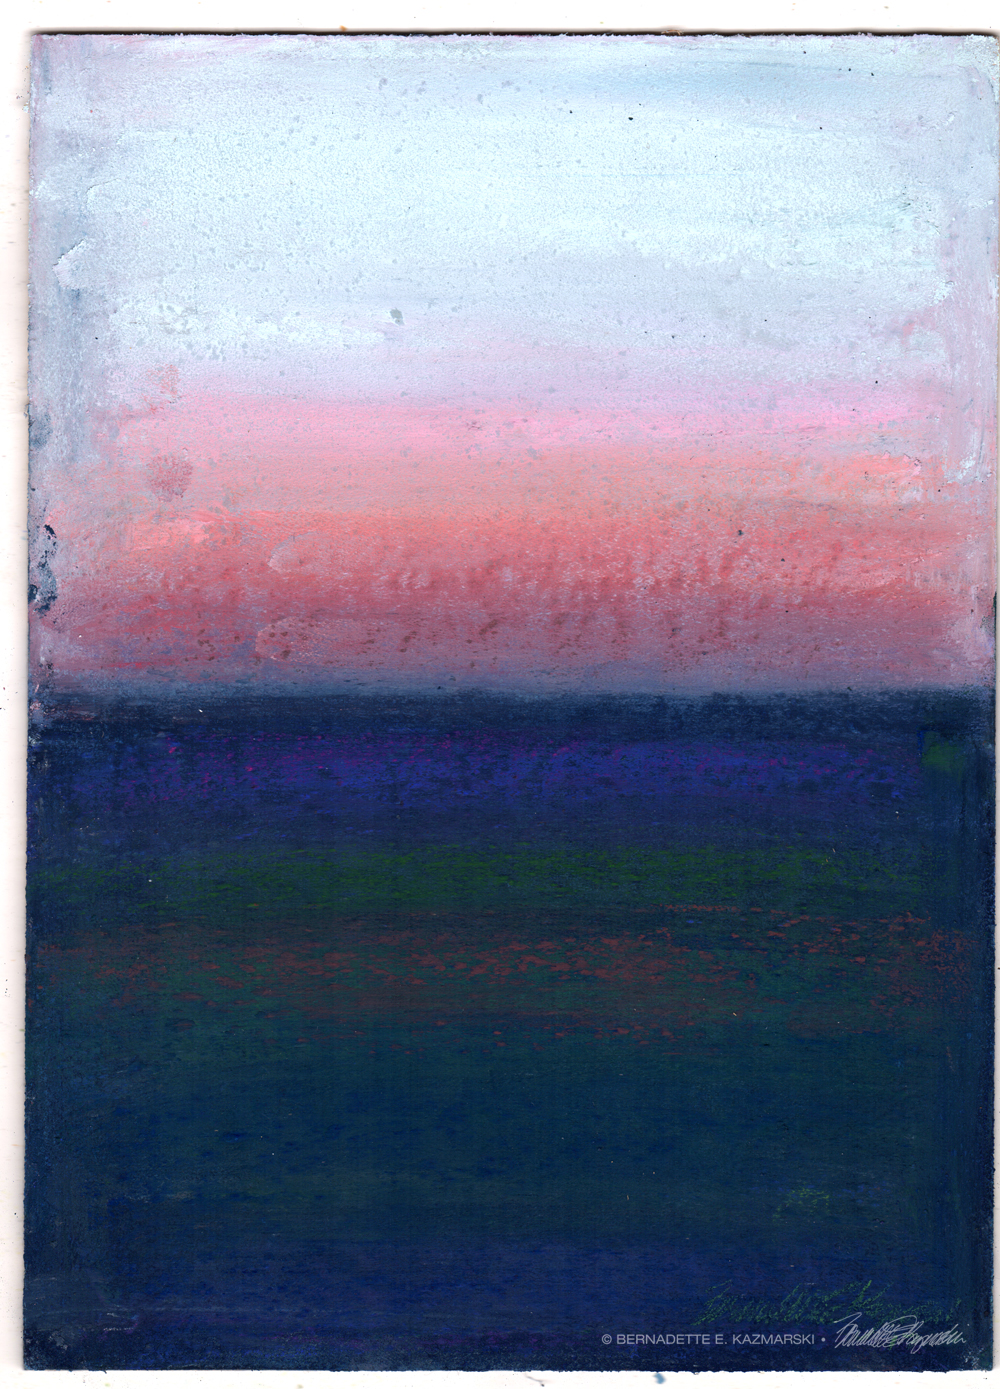 Winter Sunset, After Rothko, pastel on prepared board, 8 x 12 © Bernadette E. Kazmarski